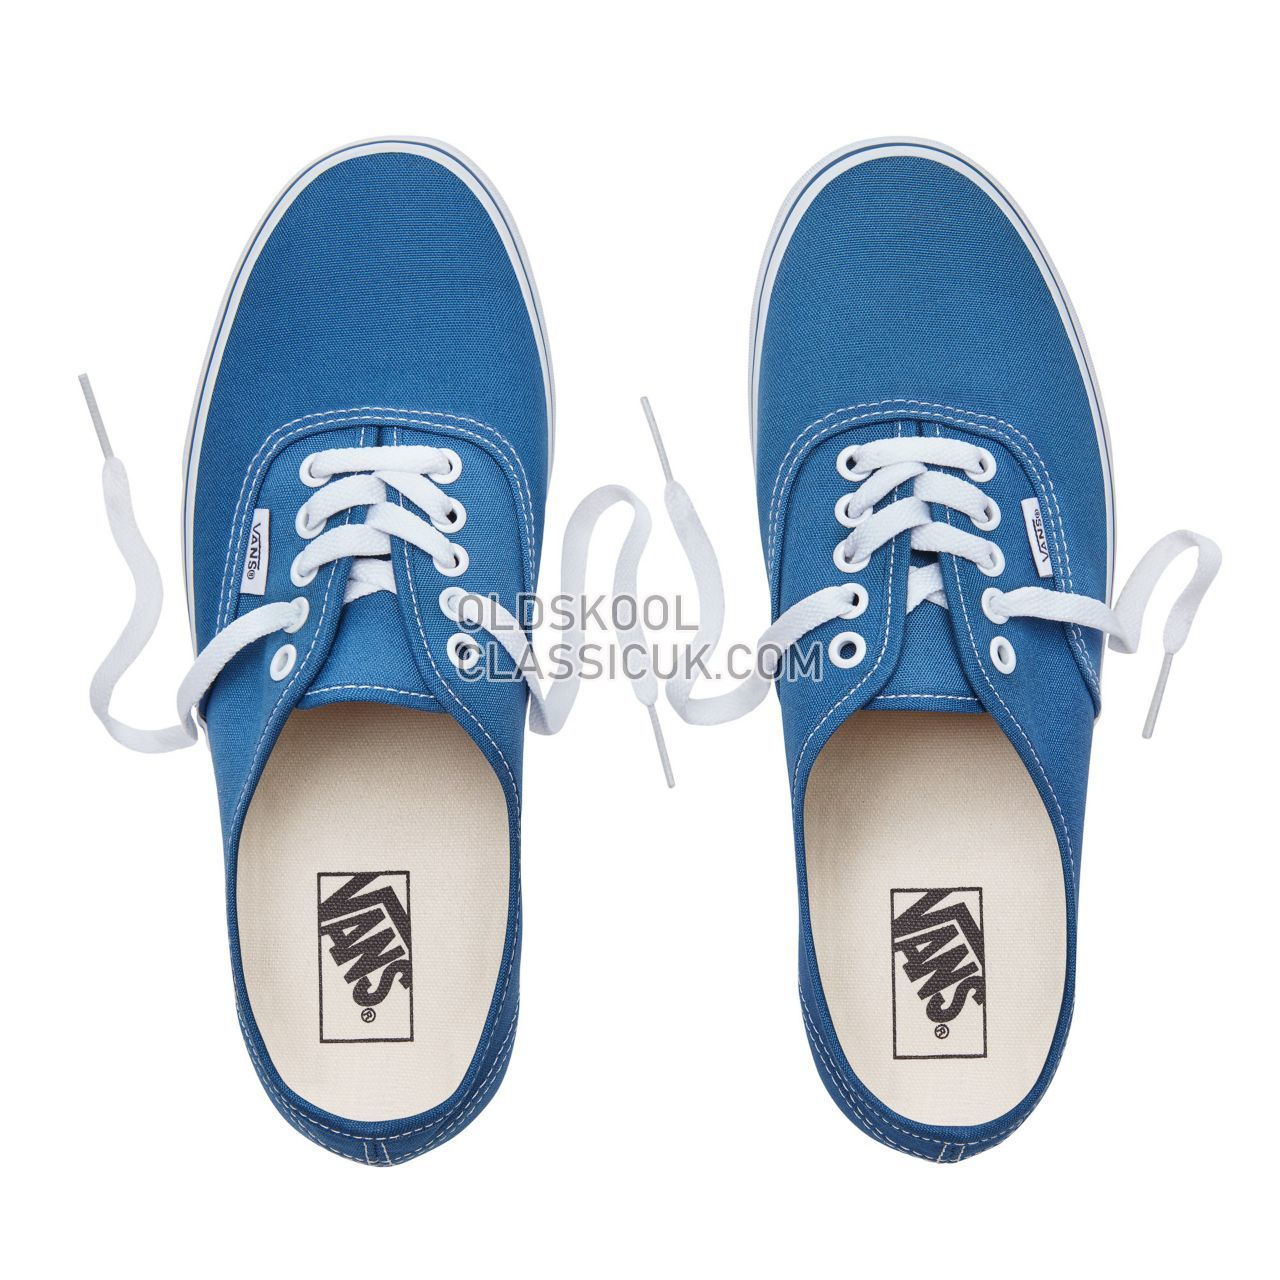 Vans Authentic Sneakers Mens Navy VEE3NVY Shoes